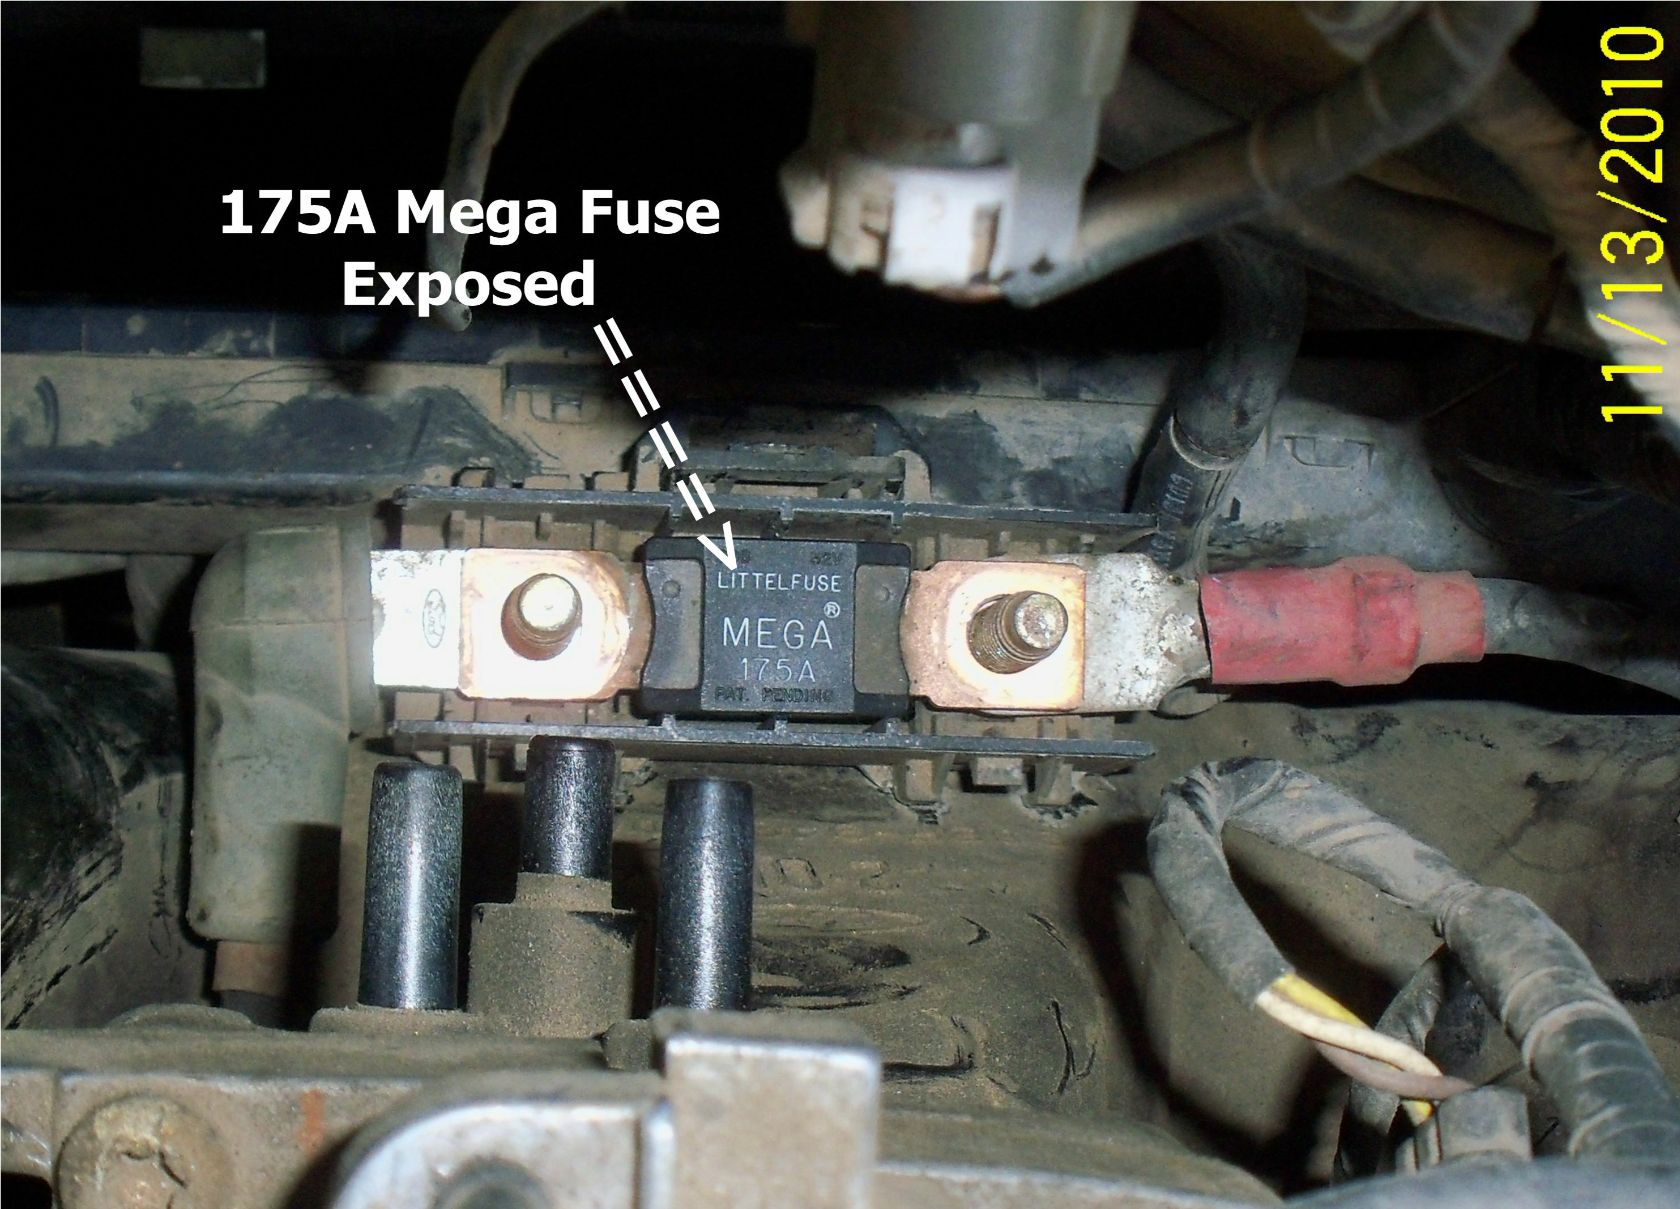 98 Ford Contour Fuel Pump Fuse as well 2000 Ford Explorer Transmission Wiring Diagram also Watch together with 98 Toyota Corolla Fuse Box moreover Mercury Cougar Engine Diagram. on 1999 ford contour fuse box location